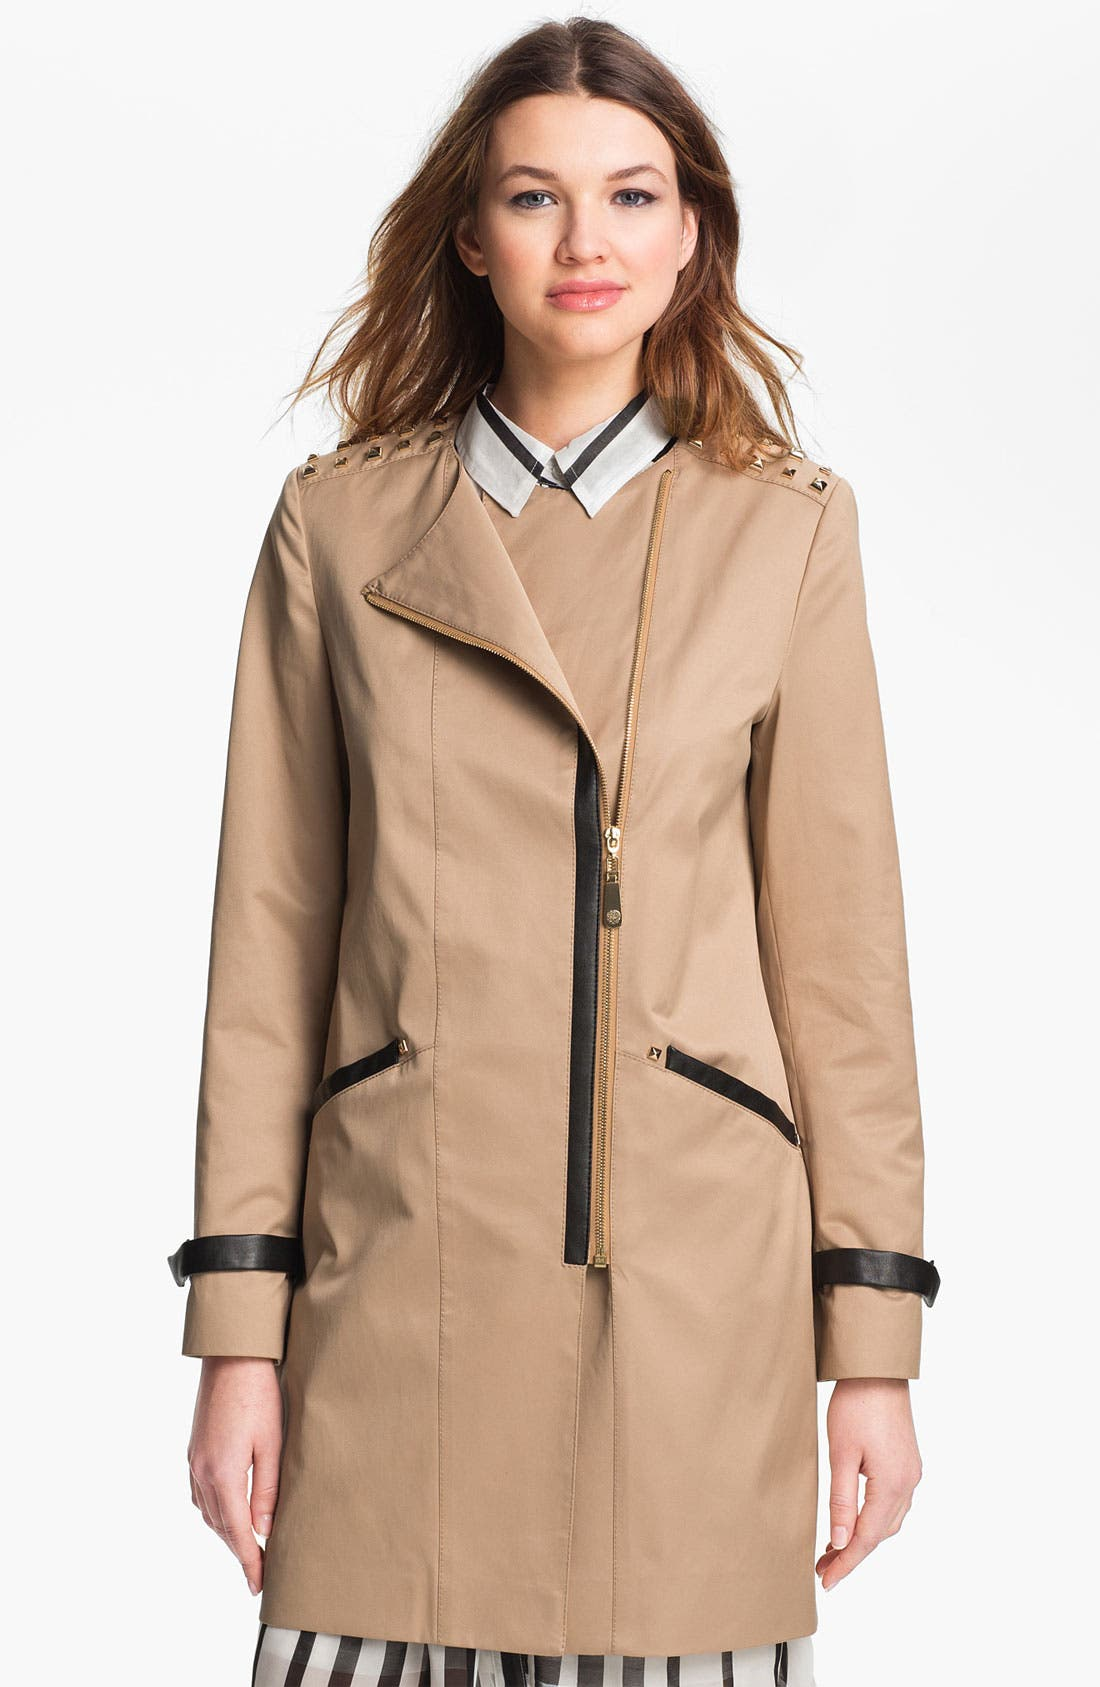 Alternate Image 1 Selected - Vince Camuto 'Nicole' Studded Asymmetrical Coat (Online Only)